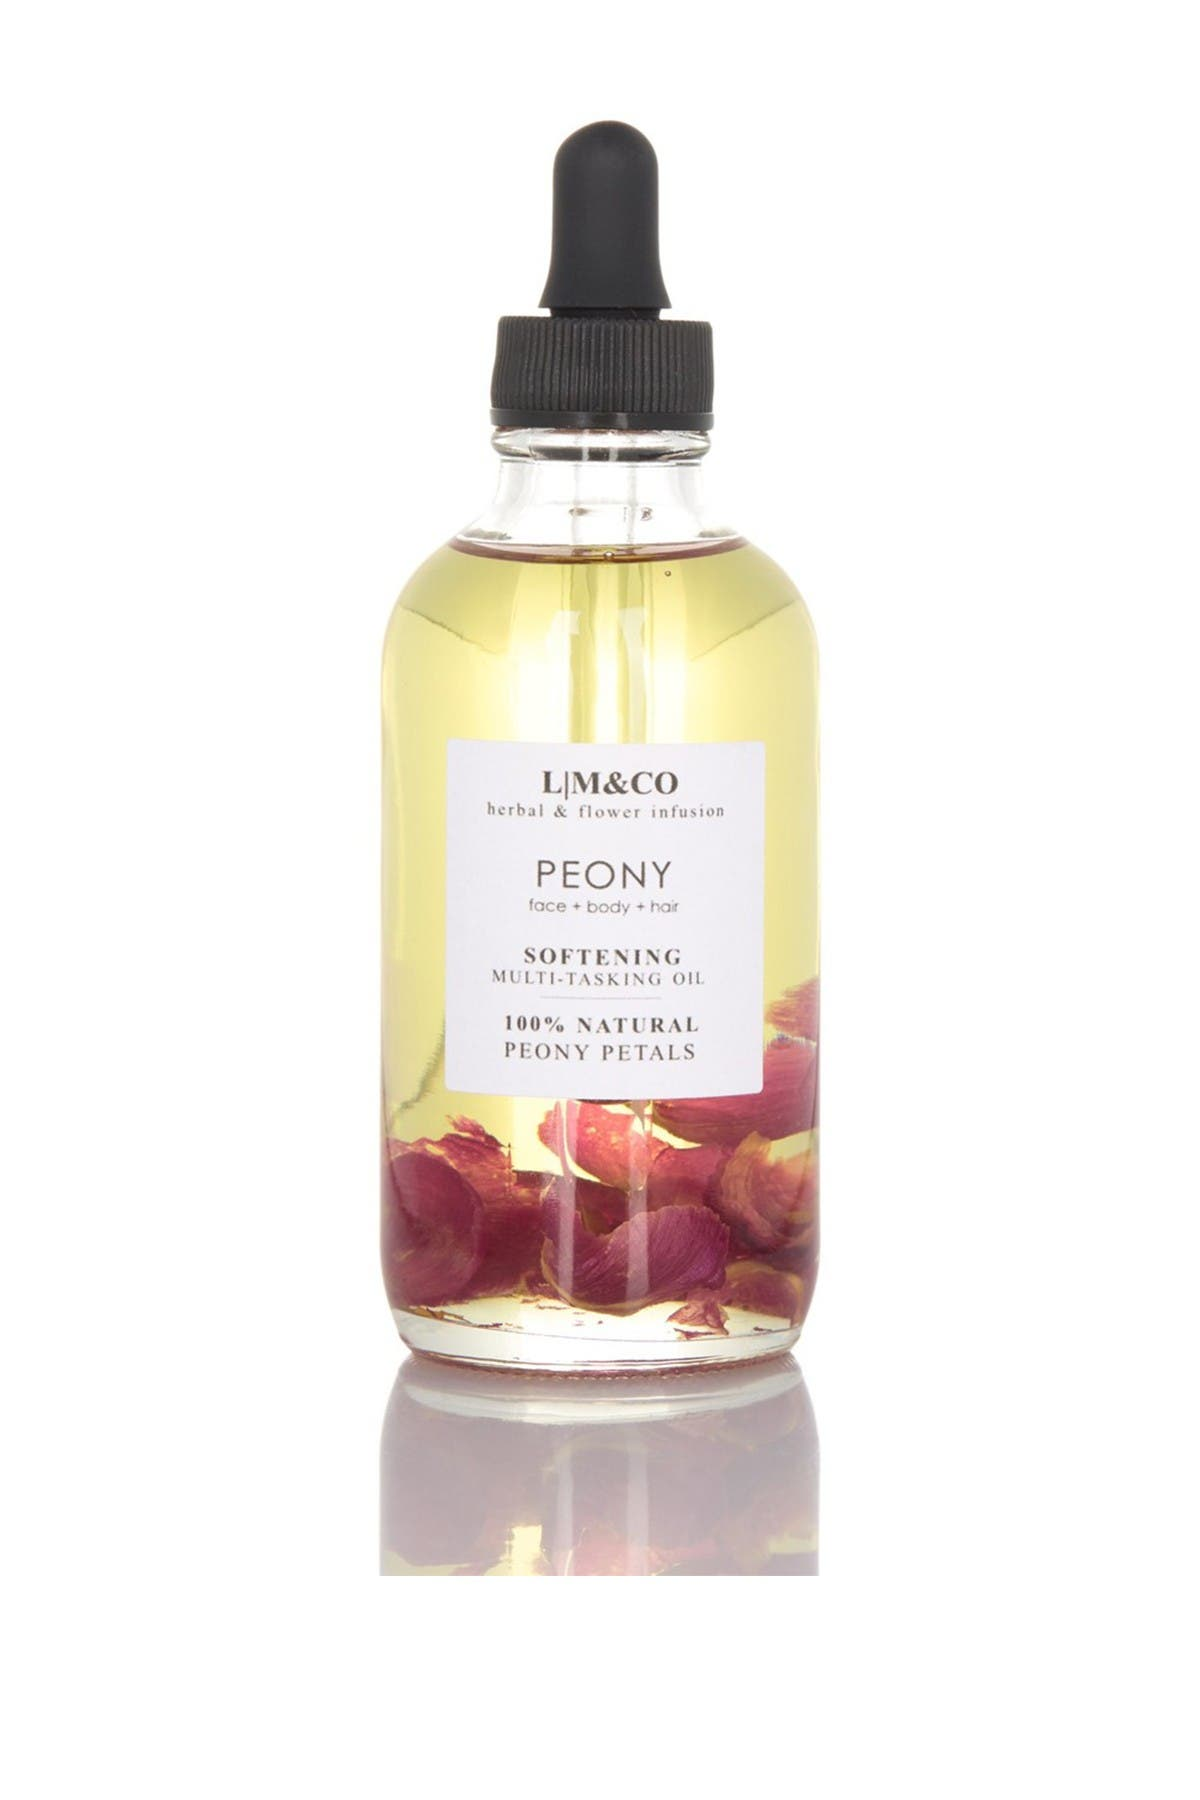 Image of LM AND CO Multi-Tasking Oil - Flower & Herbal Peony